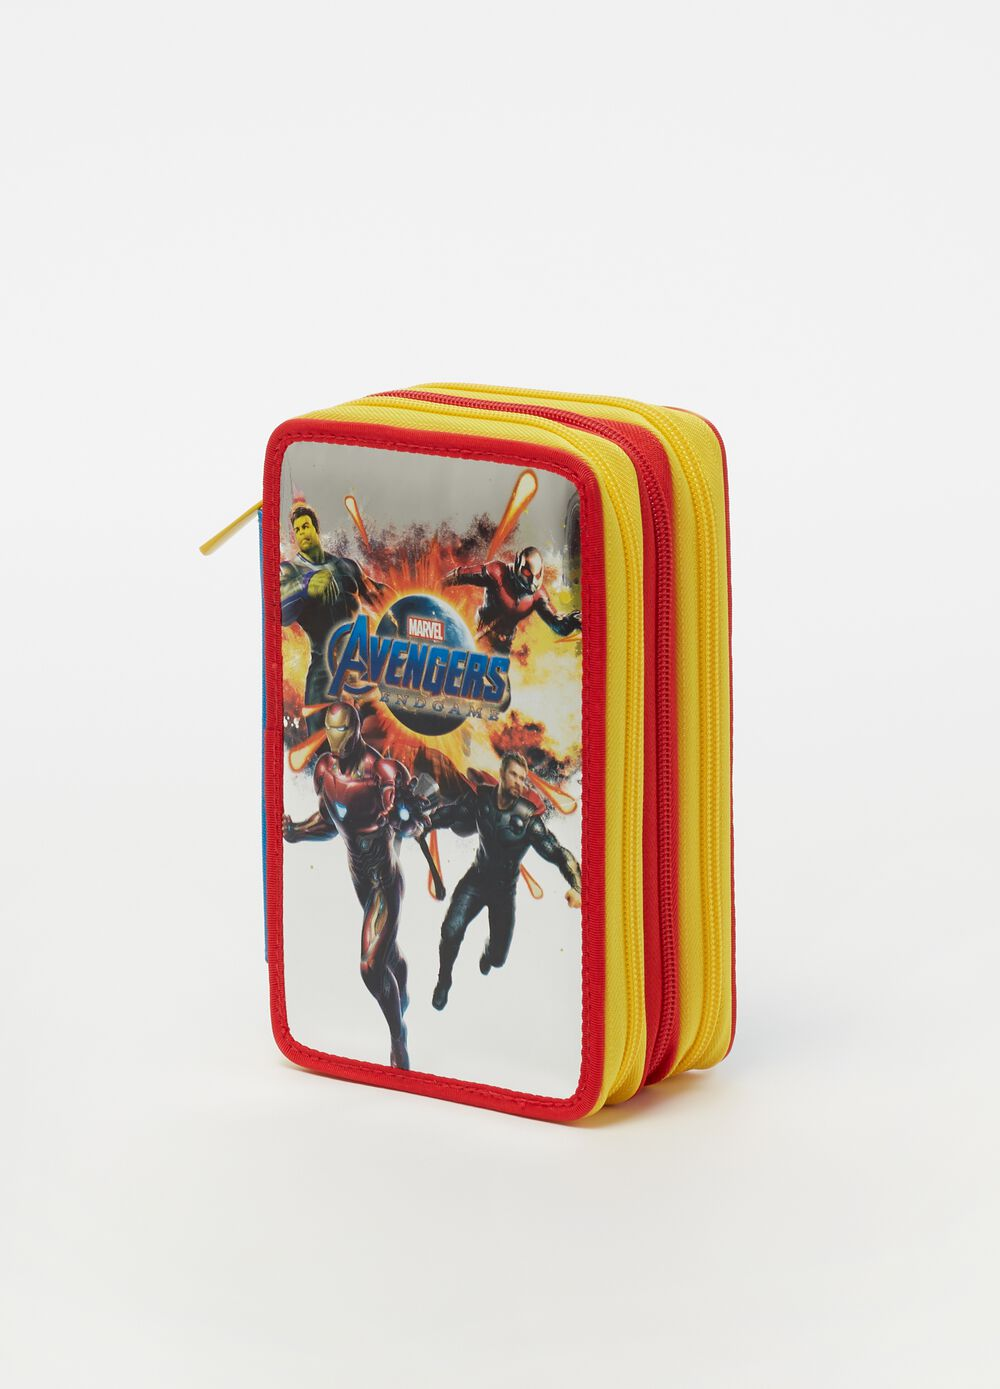 Avengers Endgame pencil case with 3 zips